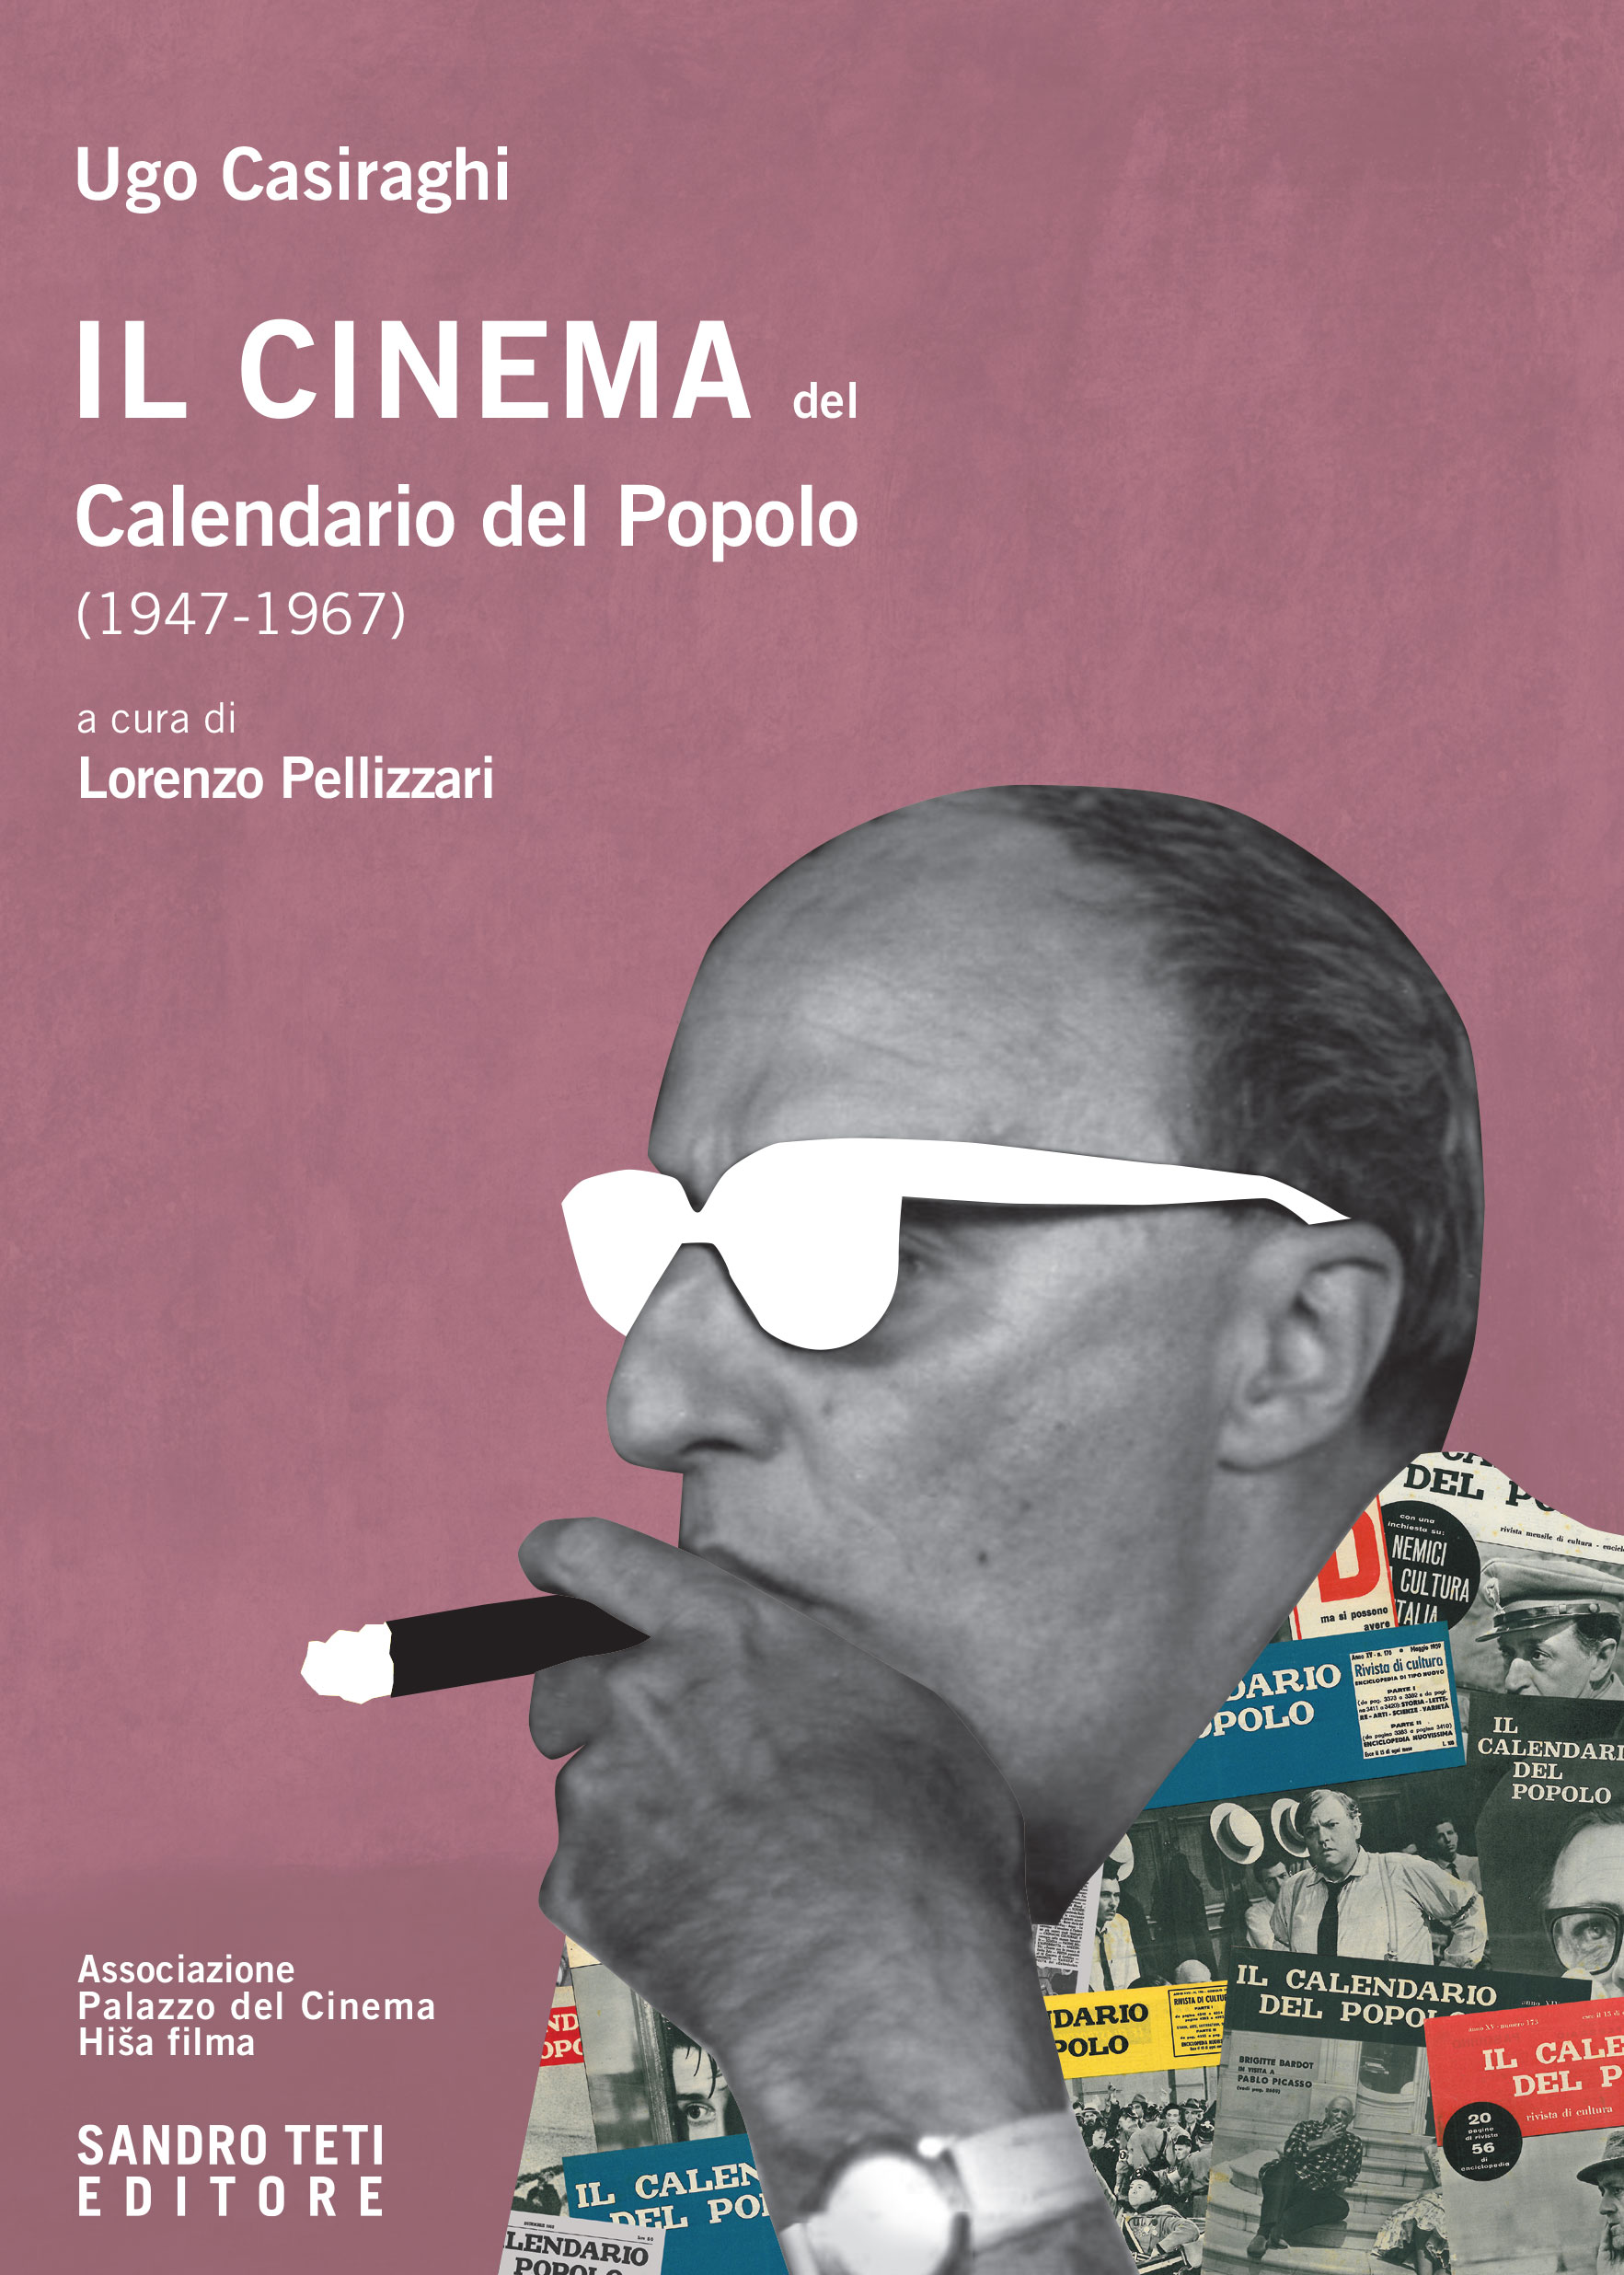 Ugo CasiraghiIl cinema del Calendario del Popolo